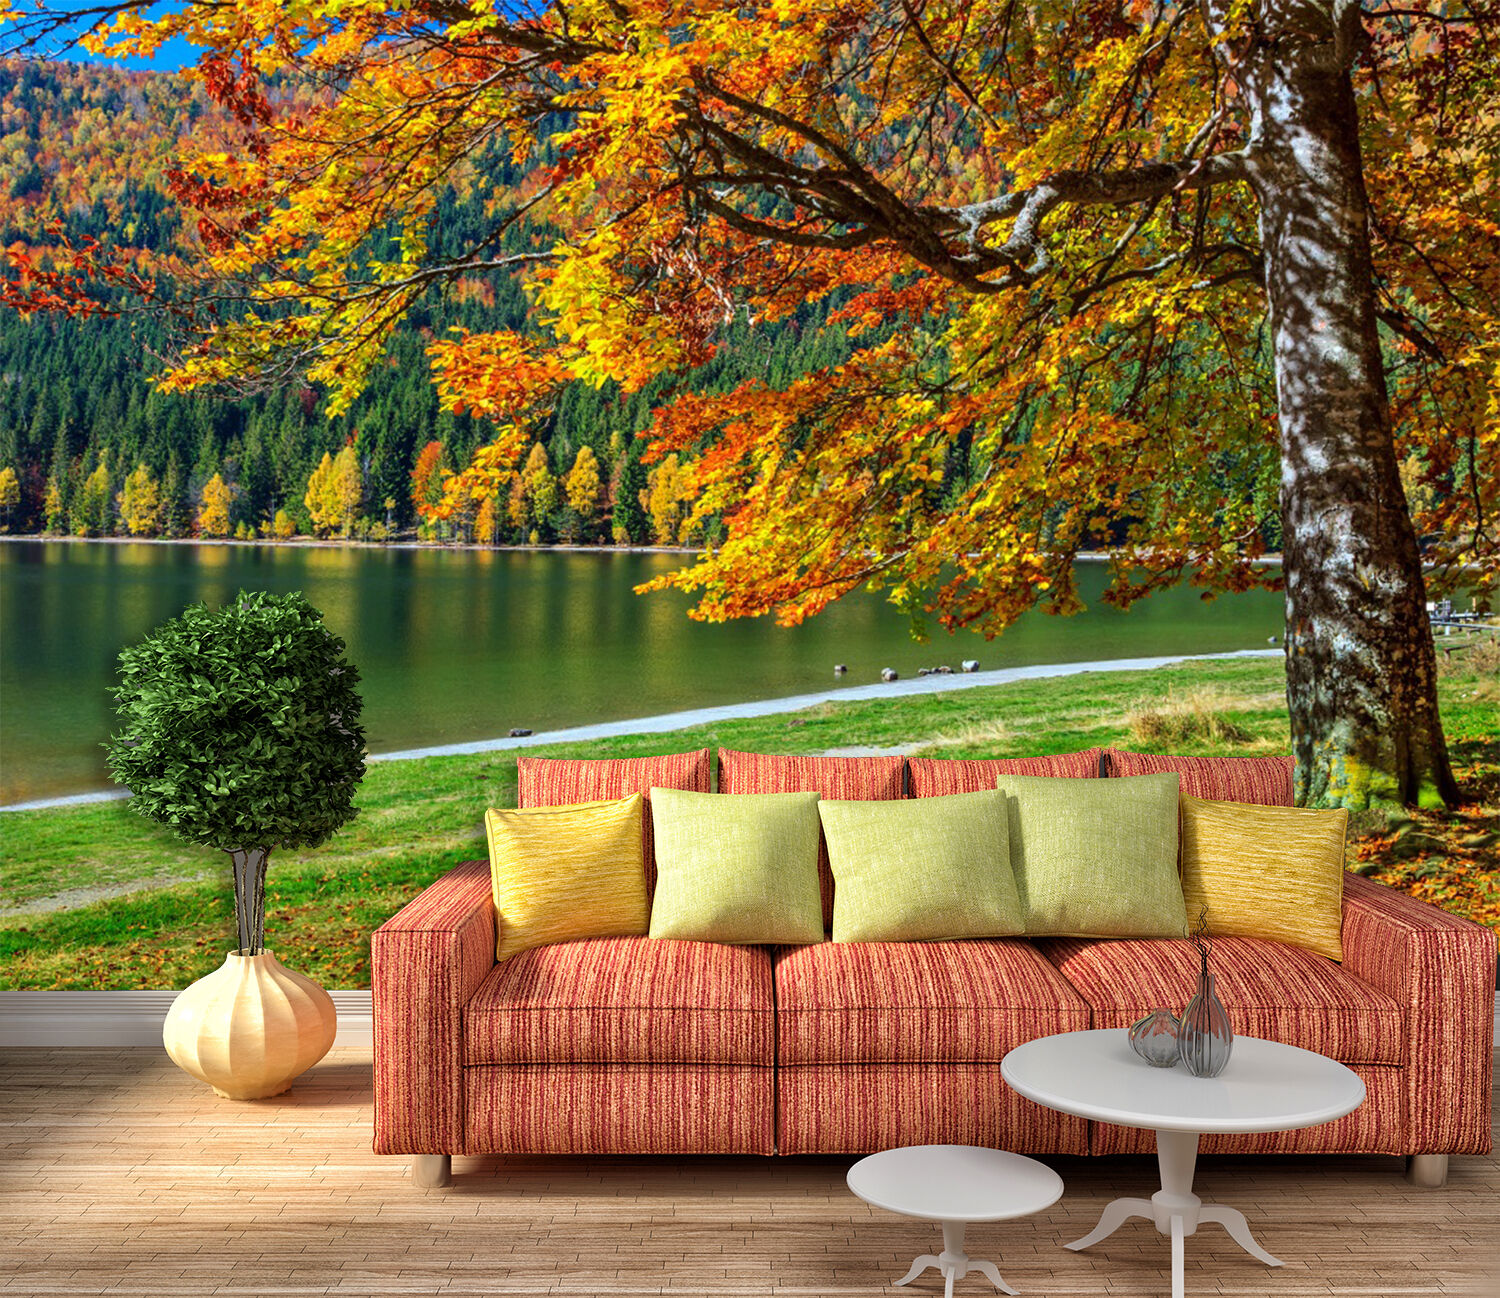 3D Mountain Lake 015 WallPaper Murals Wall Print Decal Wall Deco AJ WALLPAPER